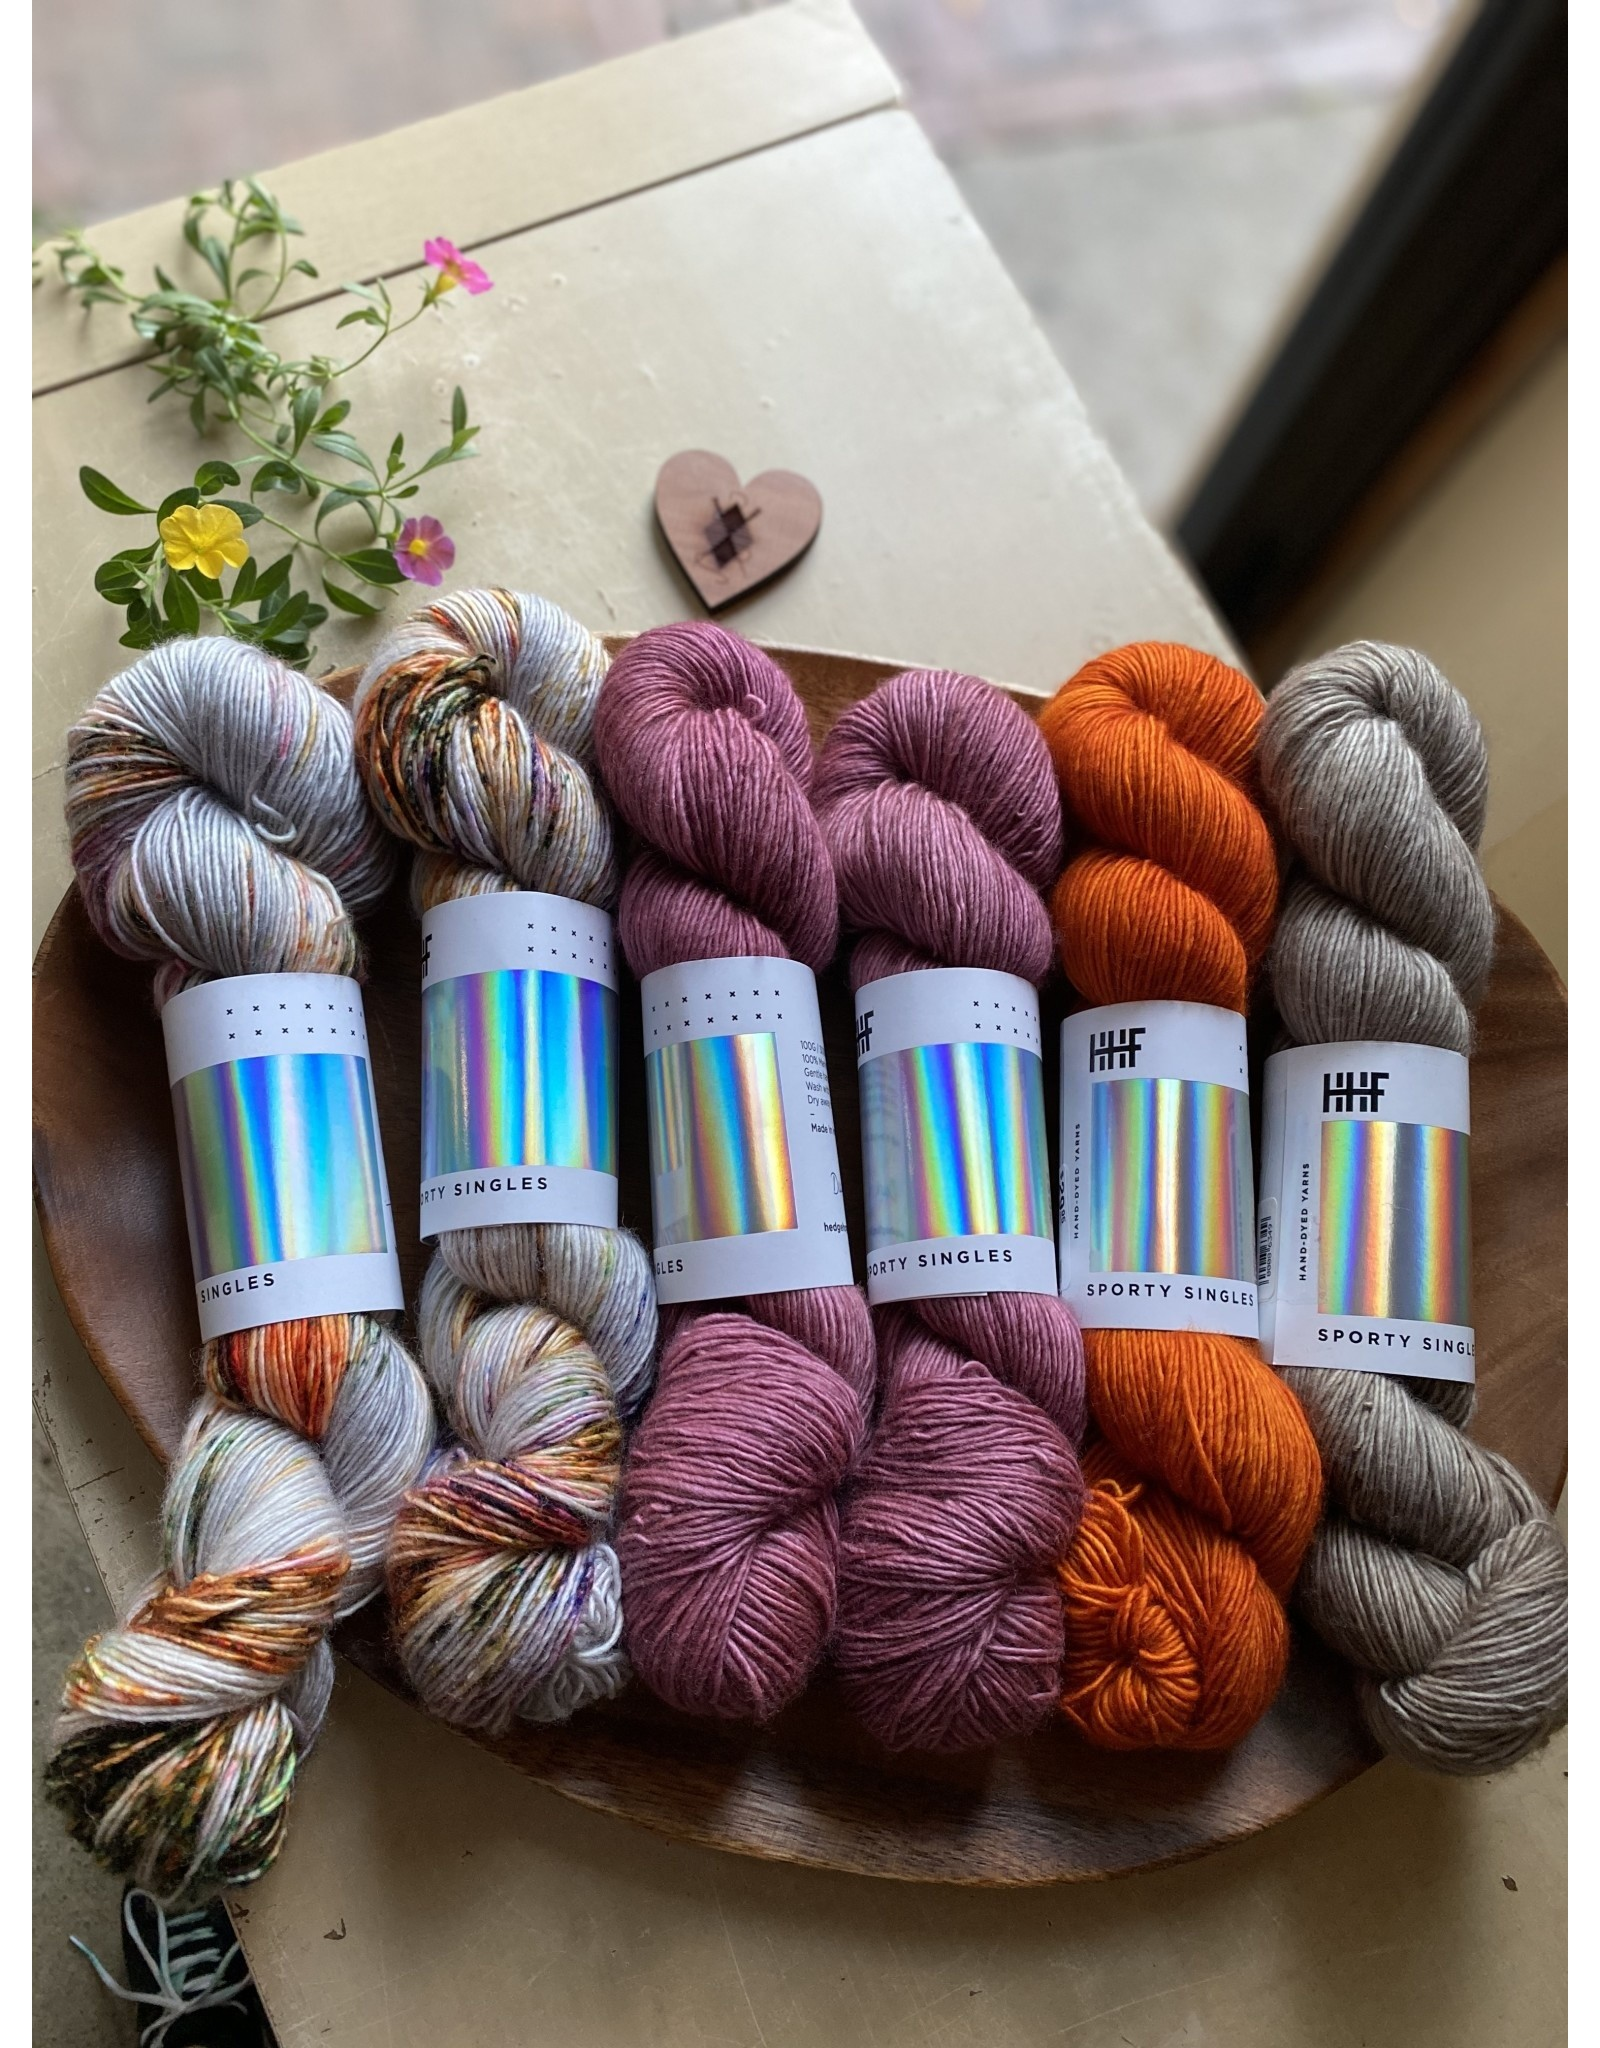 Hedgehog Fibres Sisterly Kit - Kingfisher Palette - Hedgehog Sporty Singles